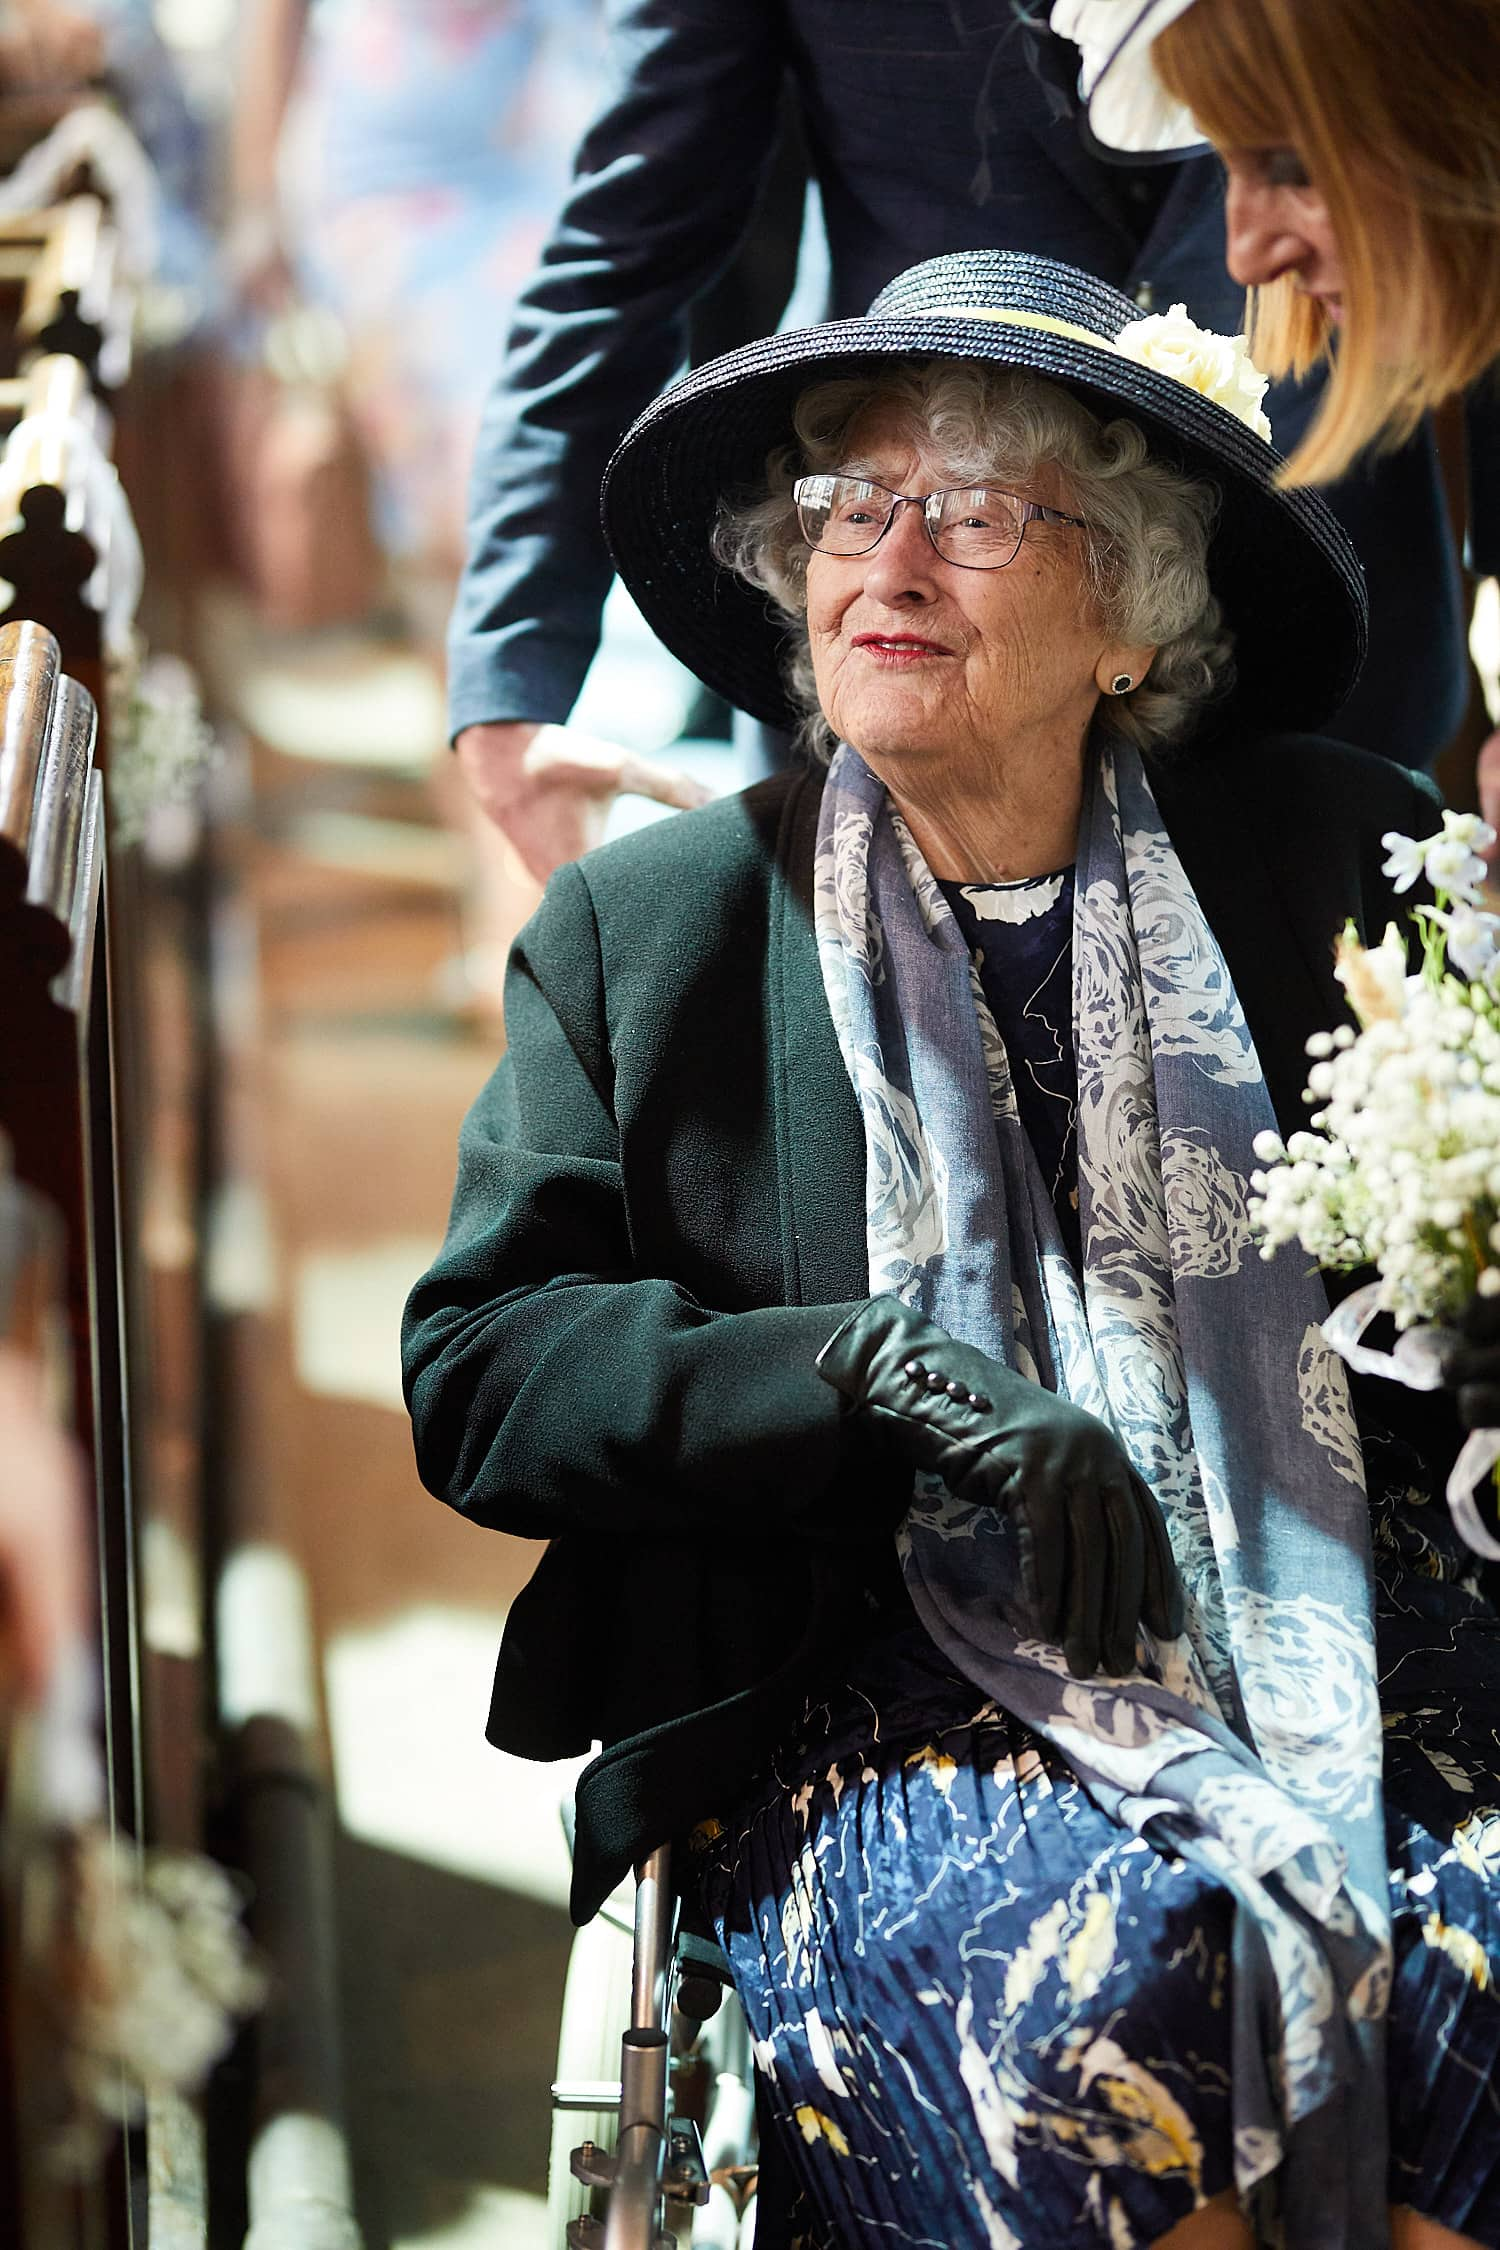 A grandmother arrives at church for the marriage of her grandson